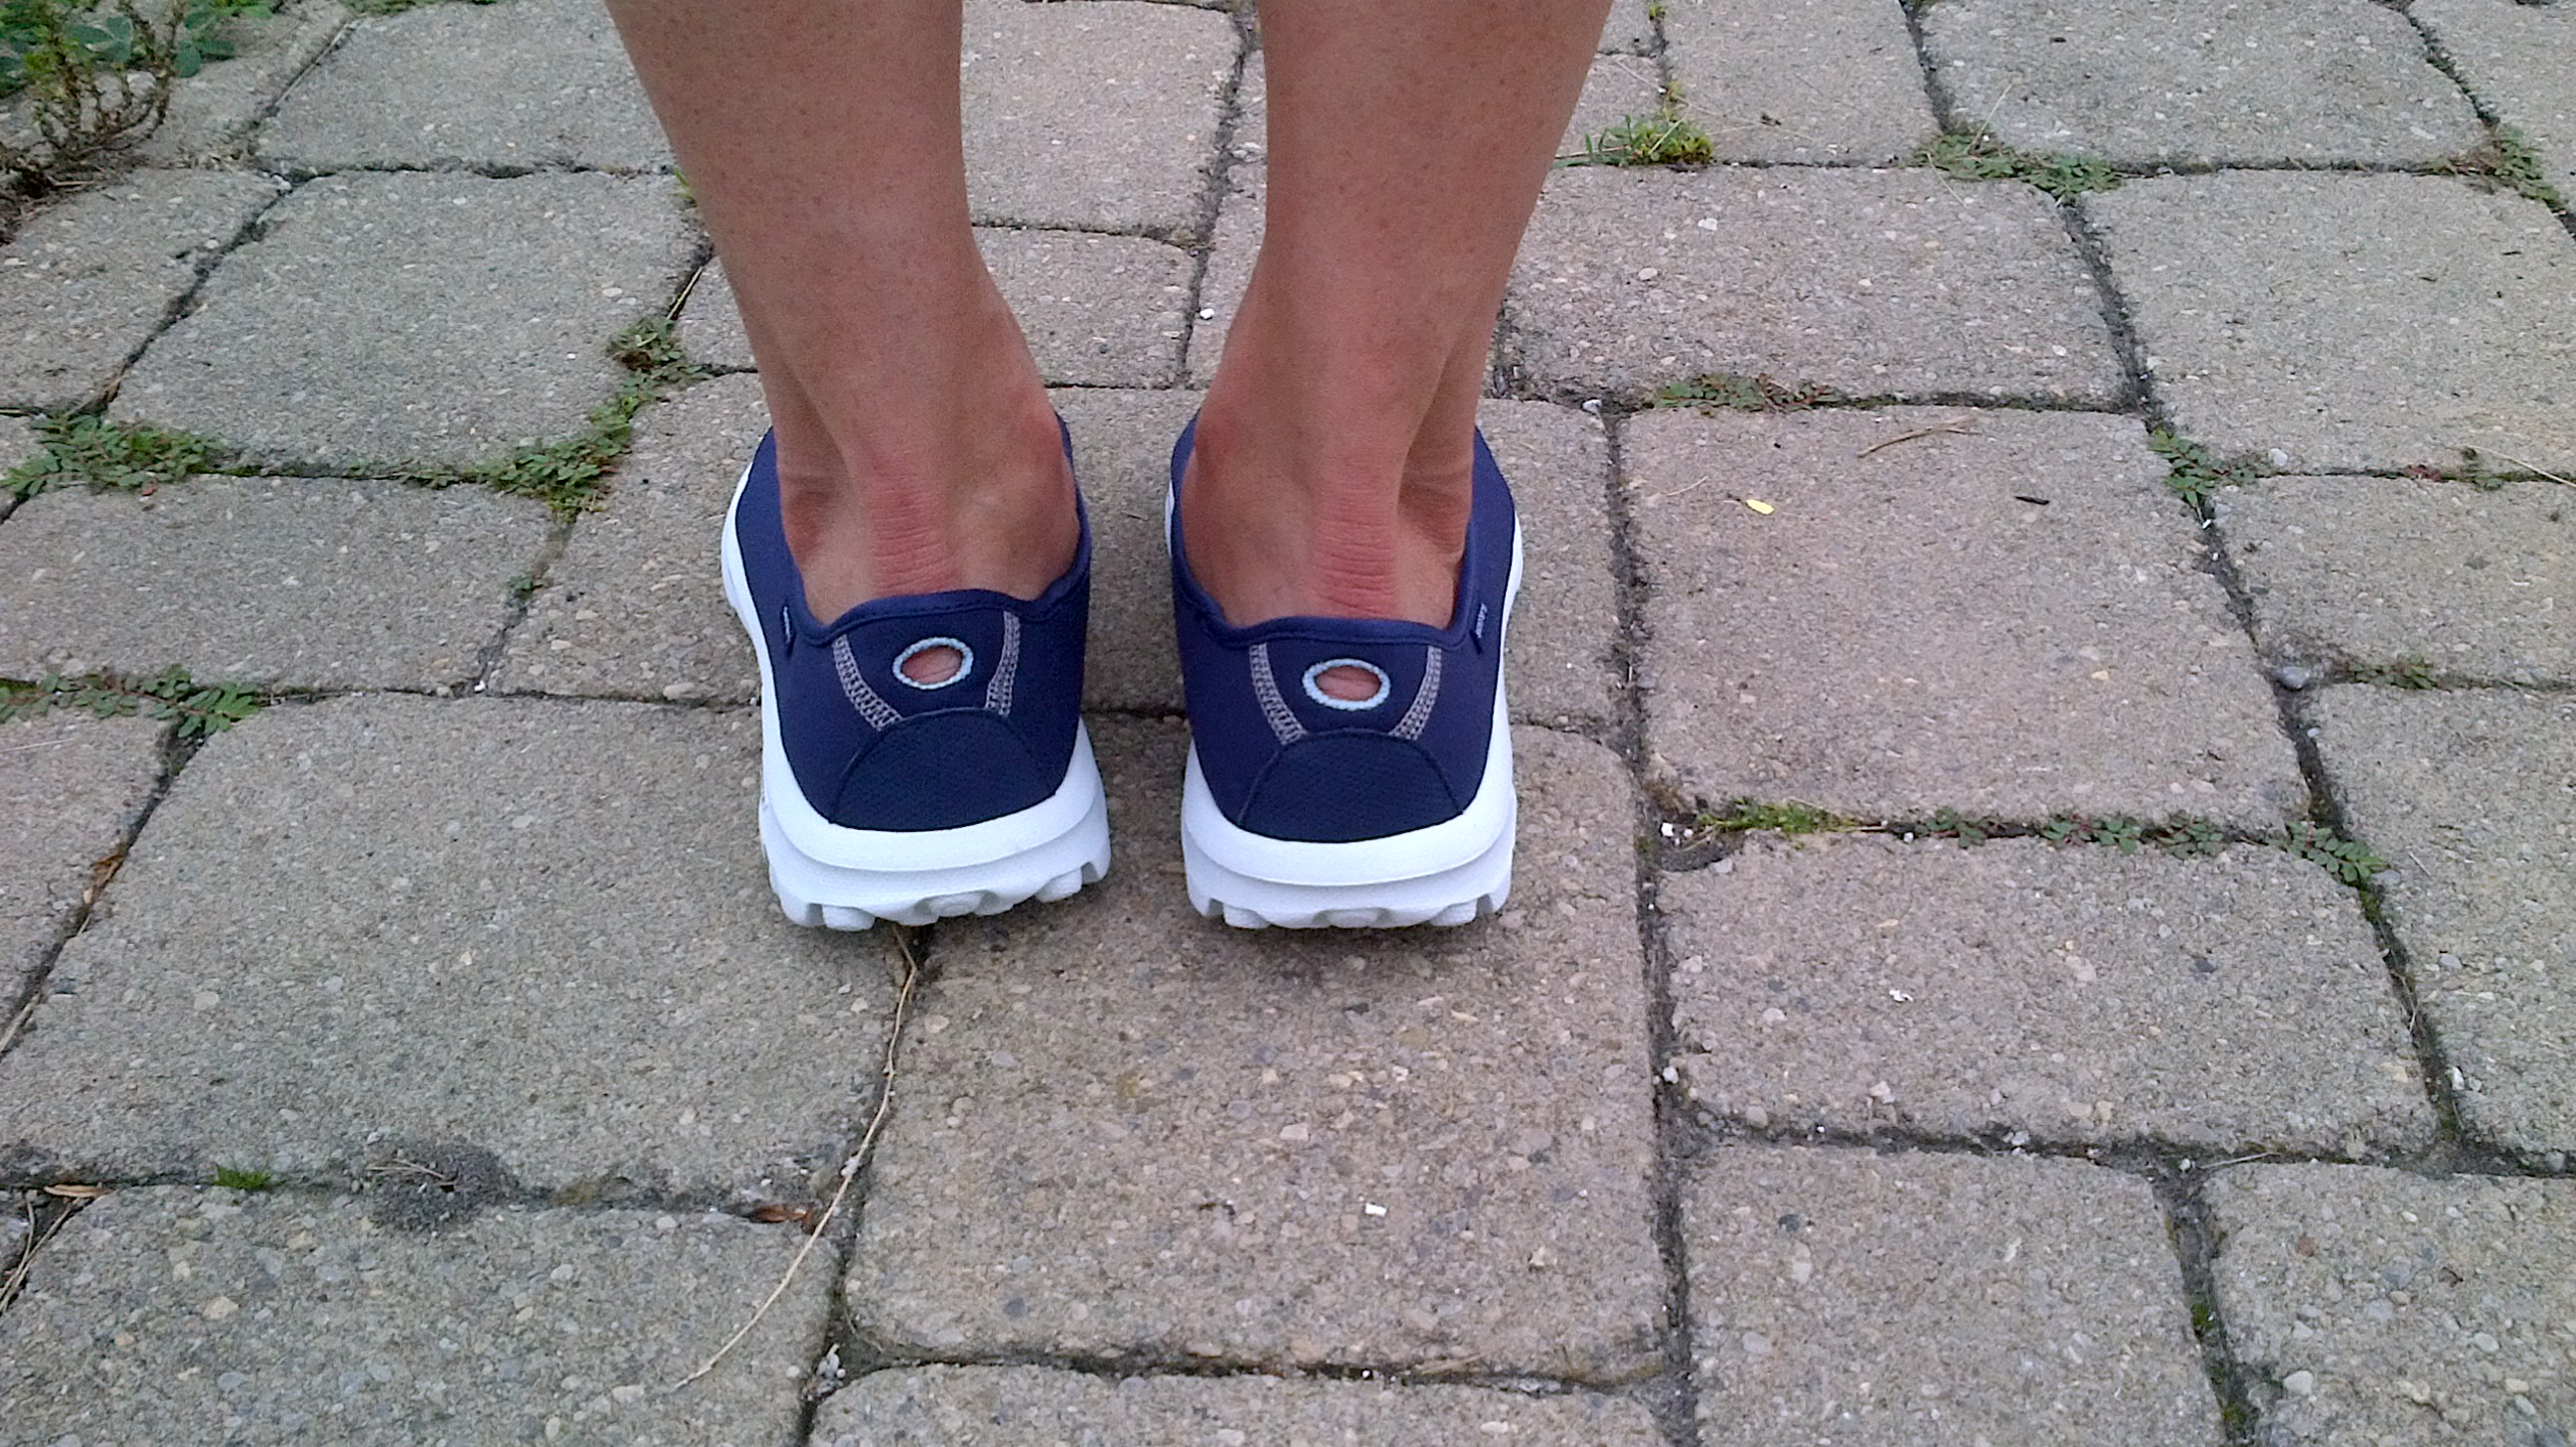 I Have Happy Feet with my Gowalk Shoes from @Skechers_Canada